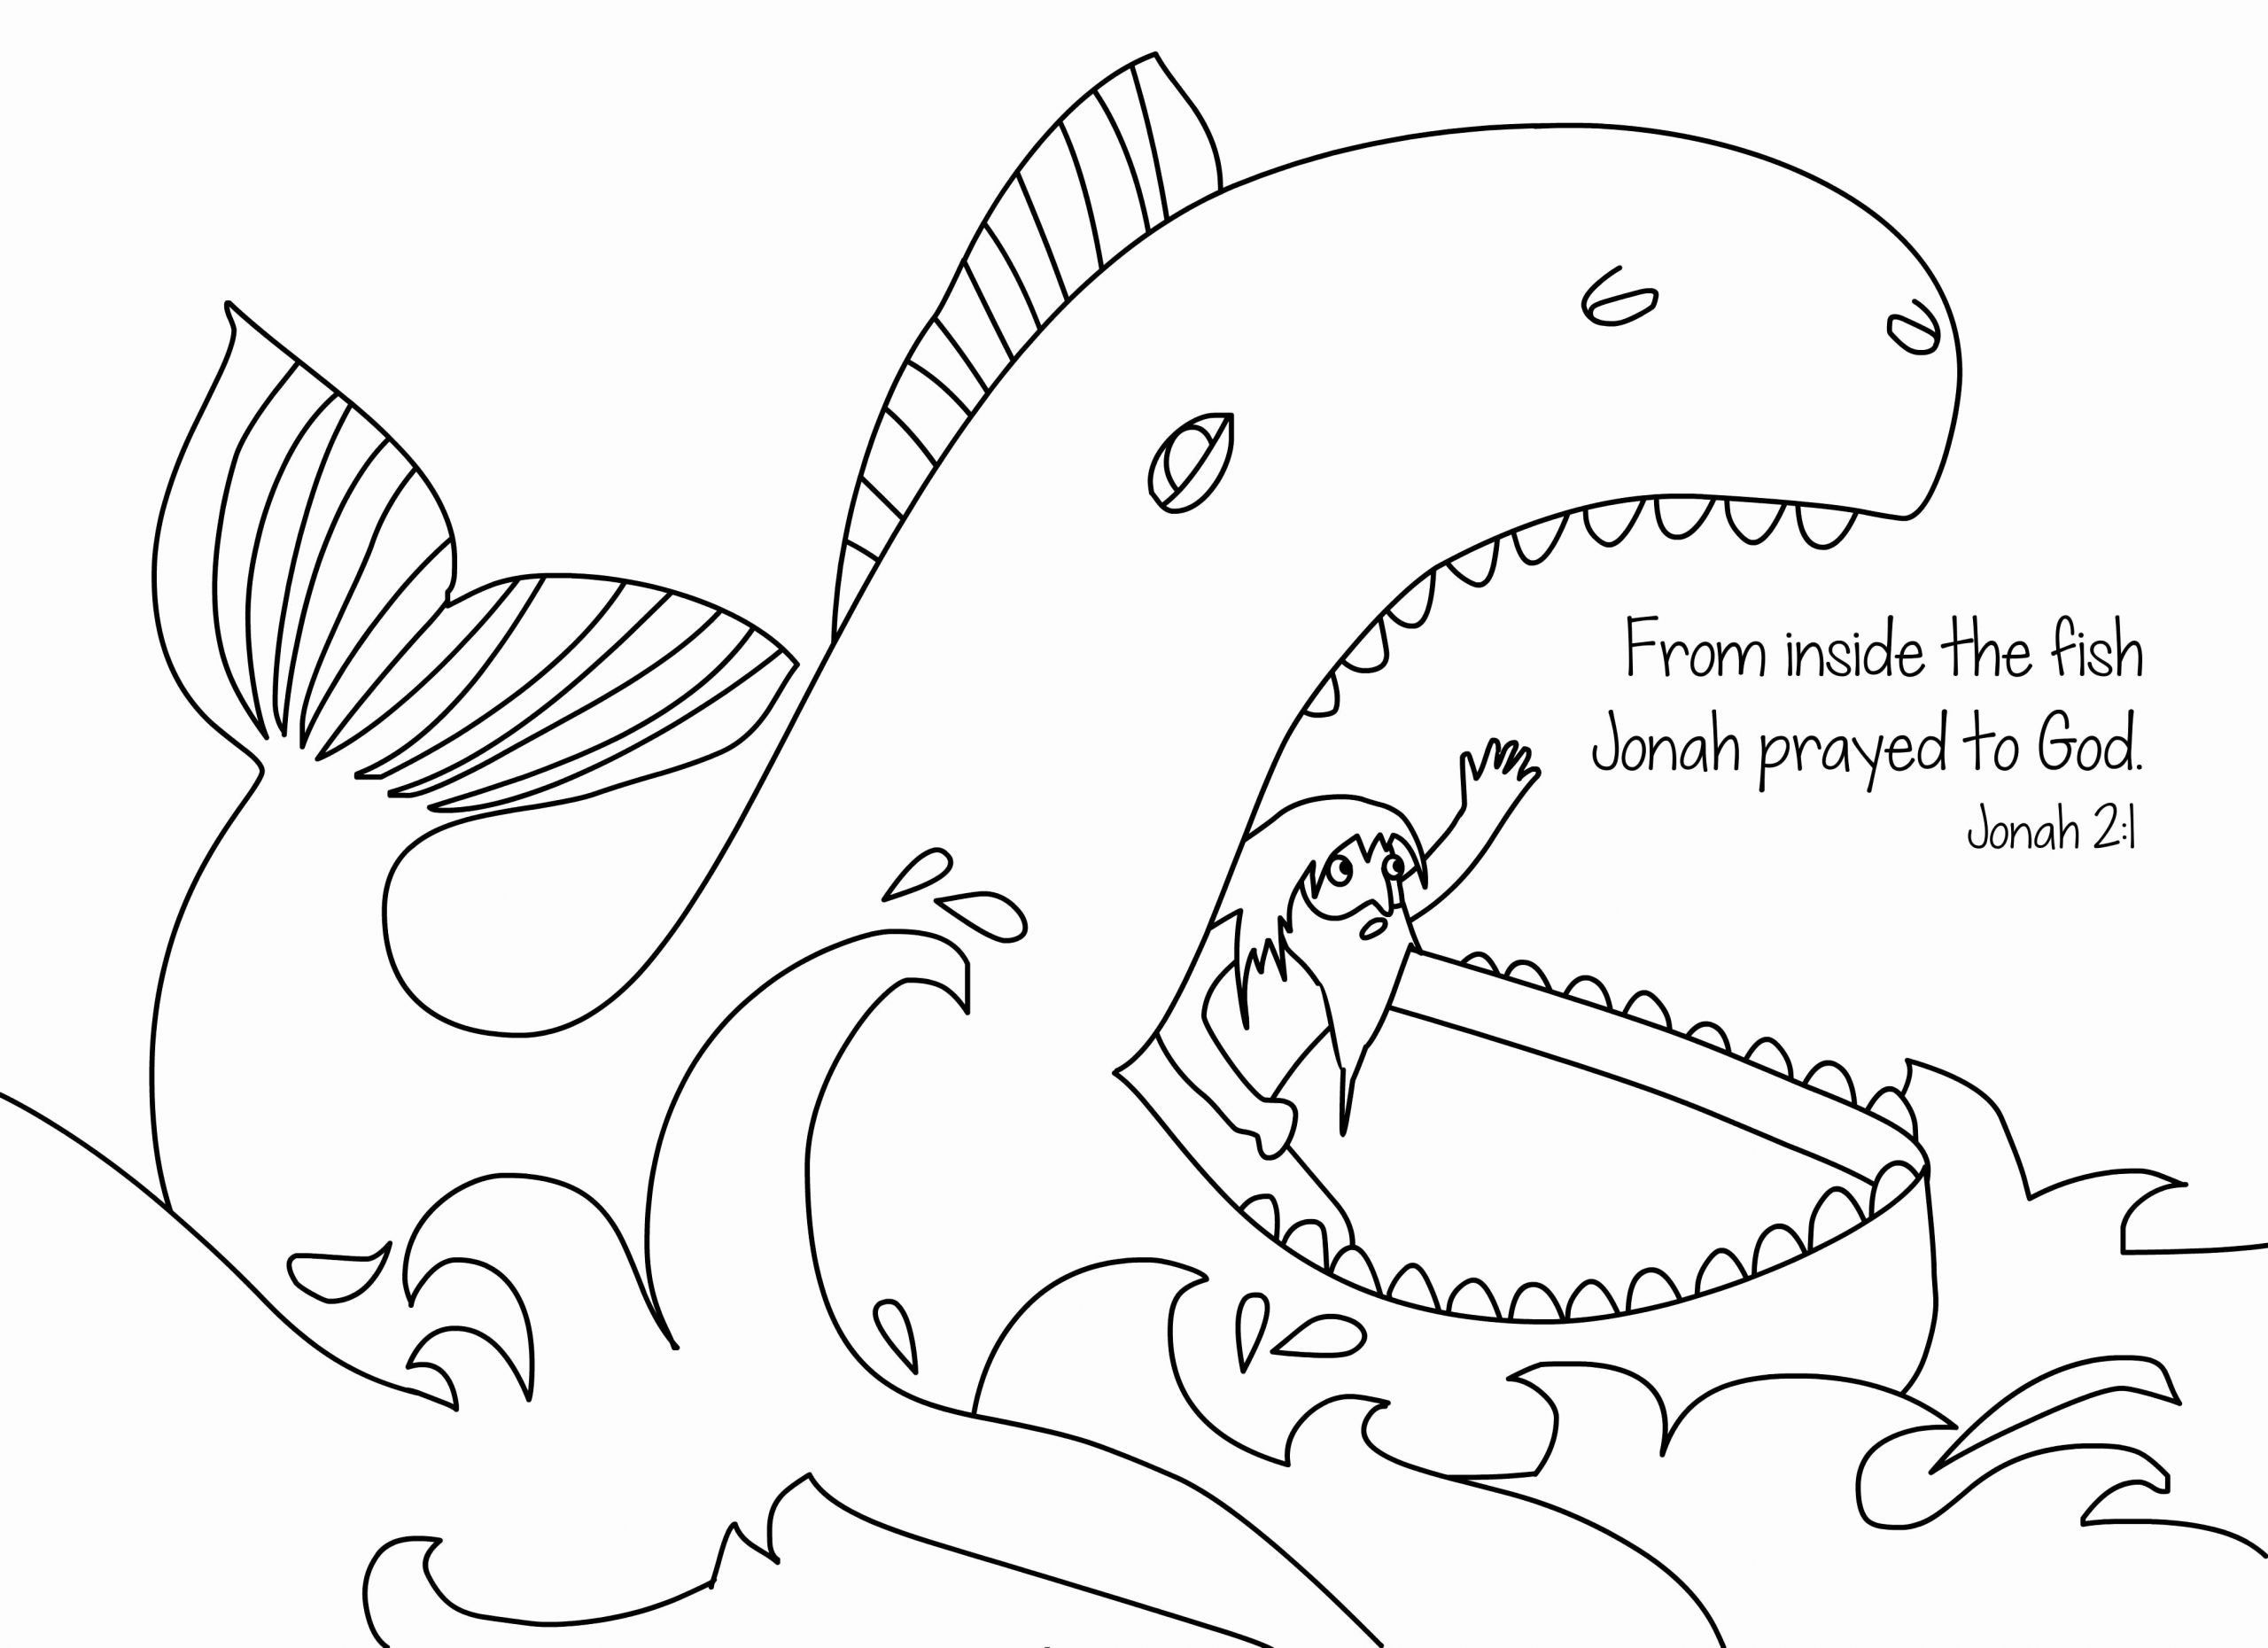 Pin By Georgia Turner On Jonah And The Whale Vbs Jefferson Ave Church 2020 Whale Coloring Pages Sunday School Coloring Pages Bible Coloring Pages